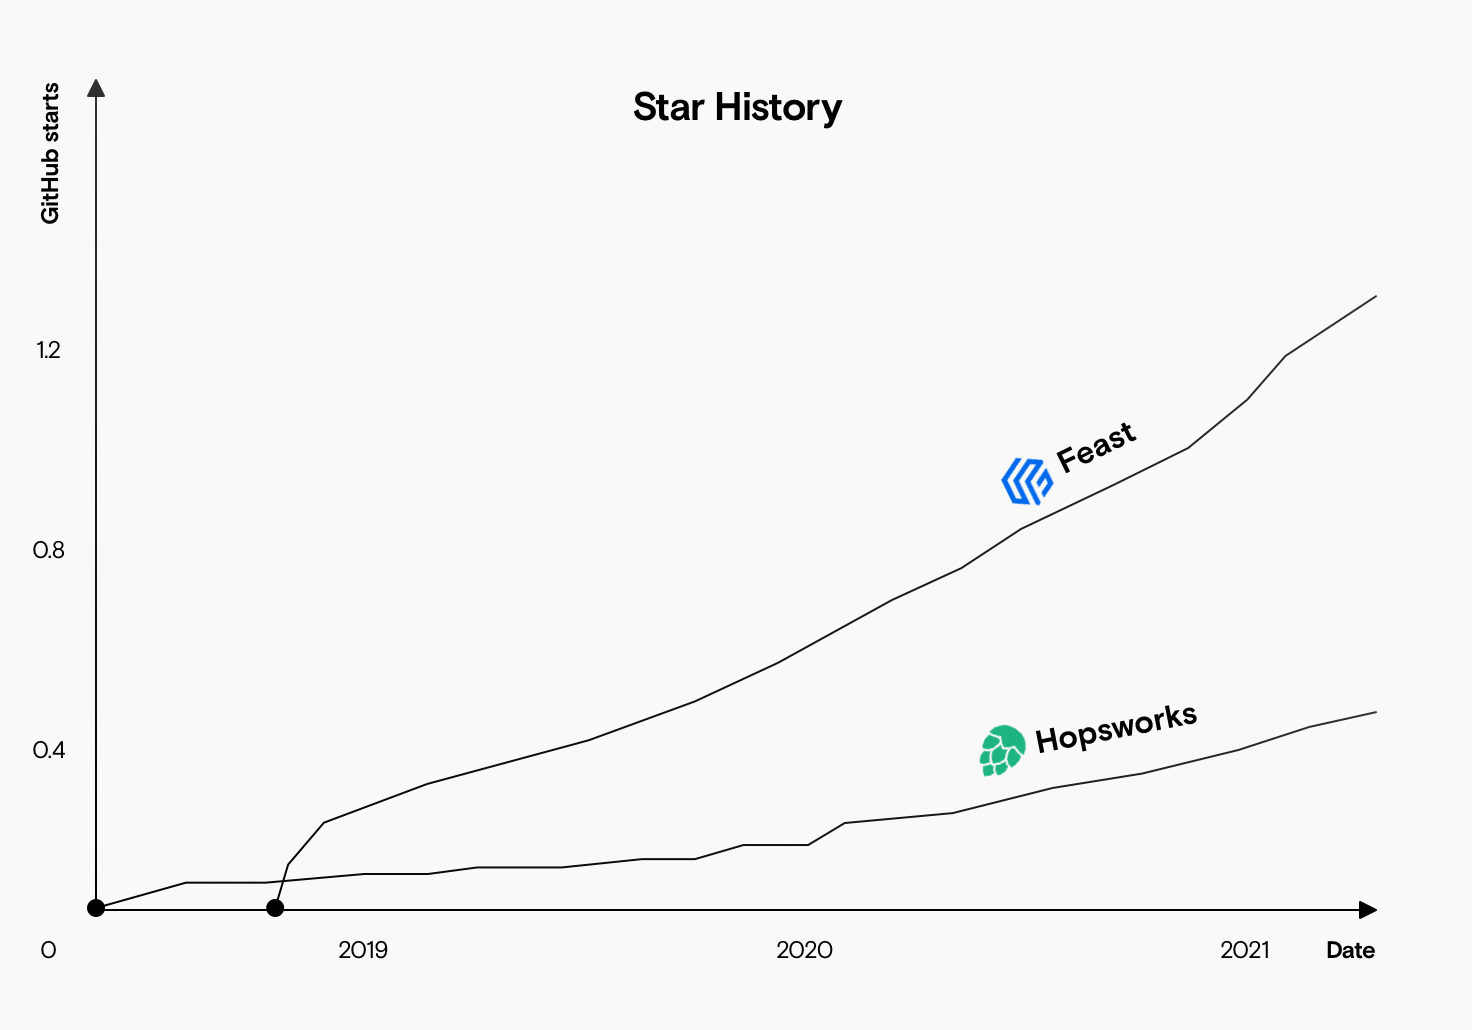 A chart showing the growth in GitHub stars of Feast and Hopsworks, with Feast at over 1000 stars and growing faster while Hopsworks has under 400 stars.